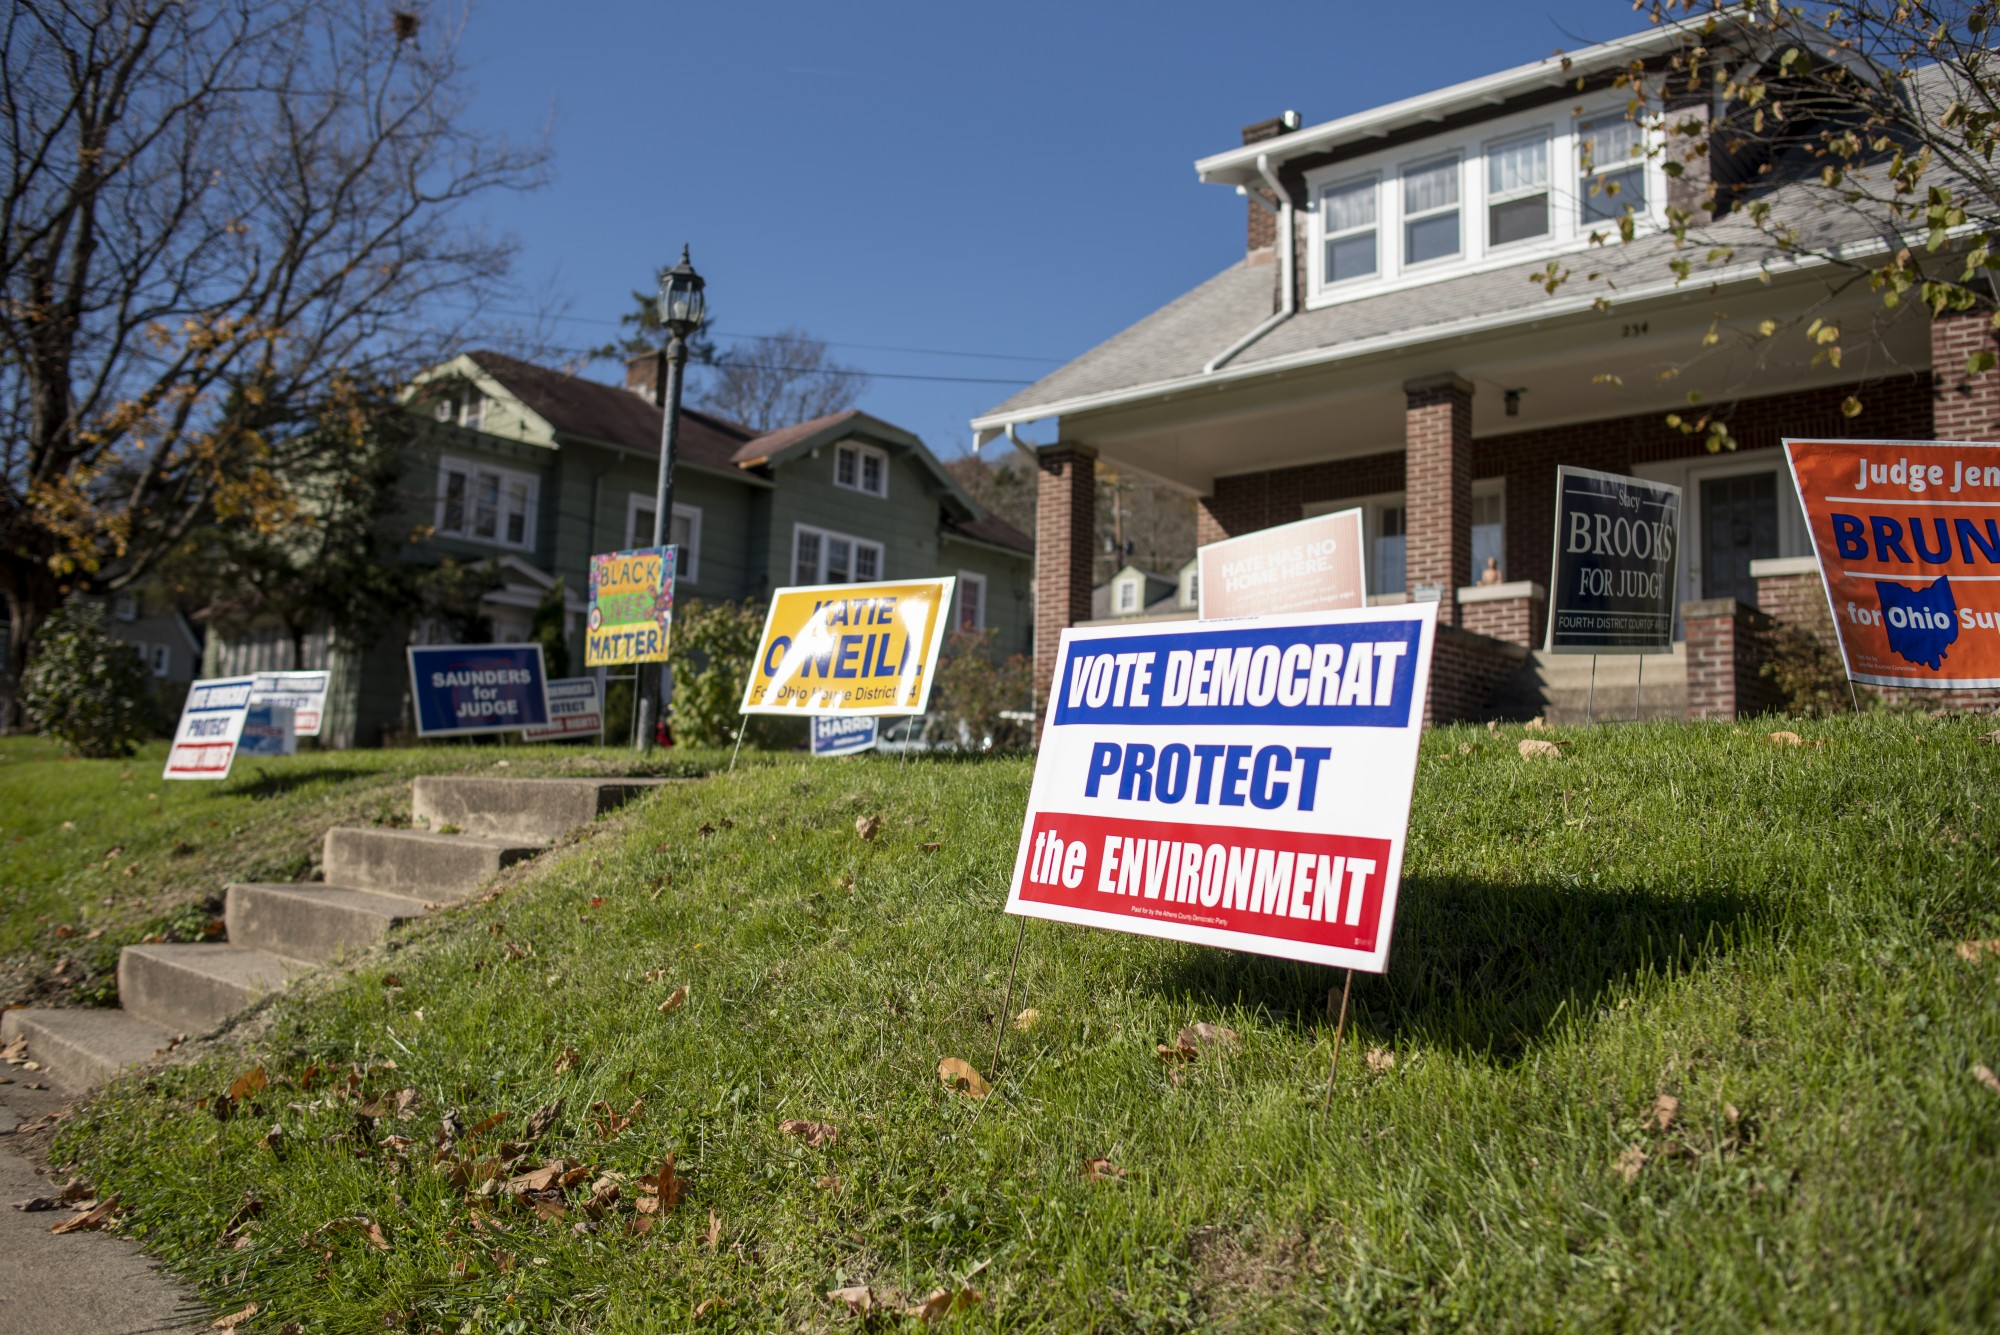 Signs supporting democratic candidates along East State Street in Athens, Ohio.